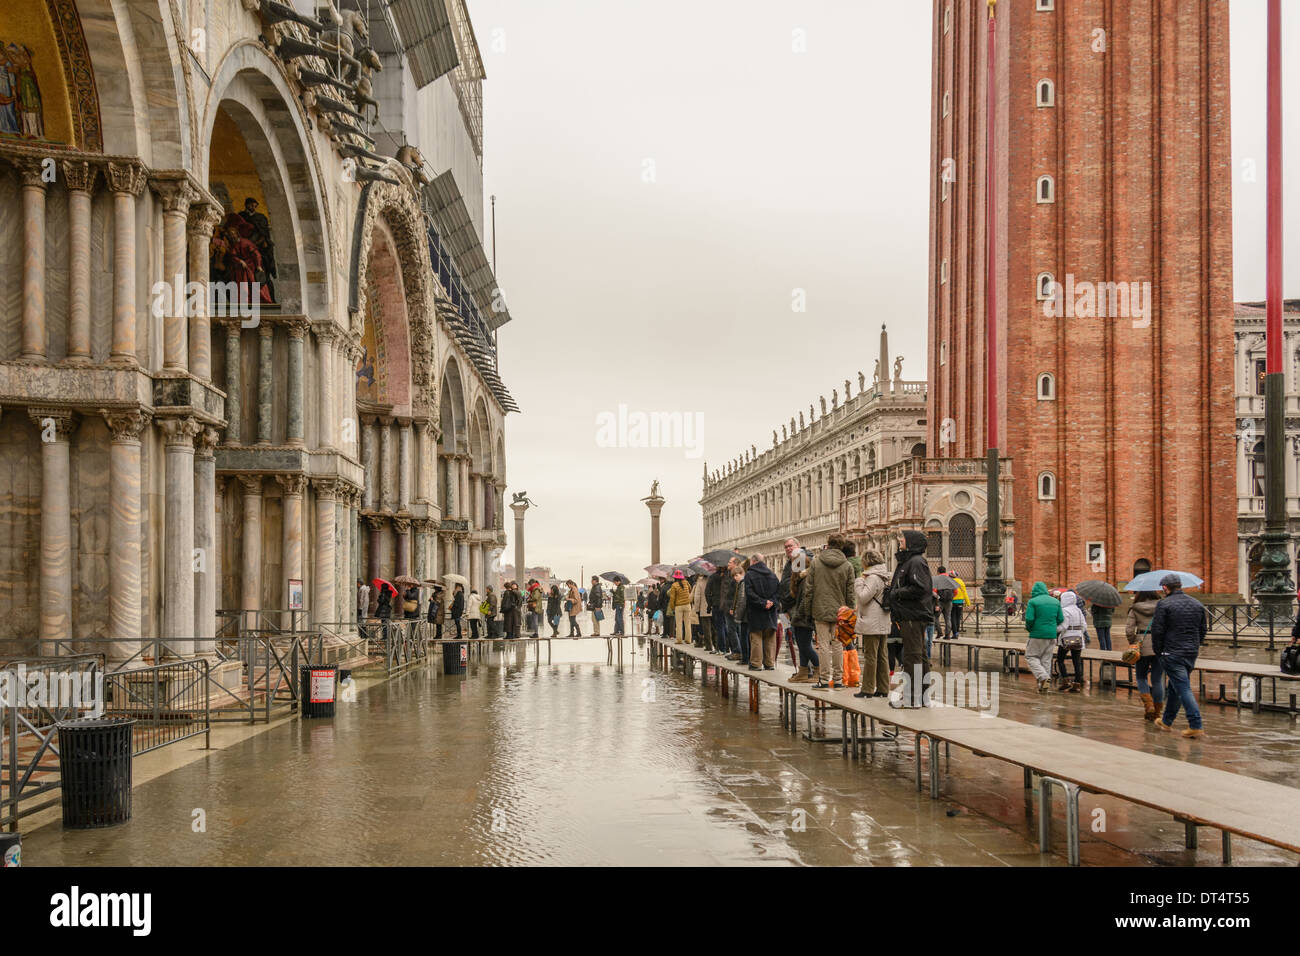 Venice, Italy. Tourists on acqua alta (high water) gangways queuing to enter the San Marco Basilica. - Stock Image